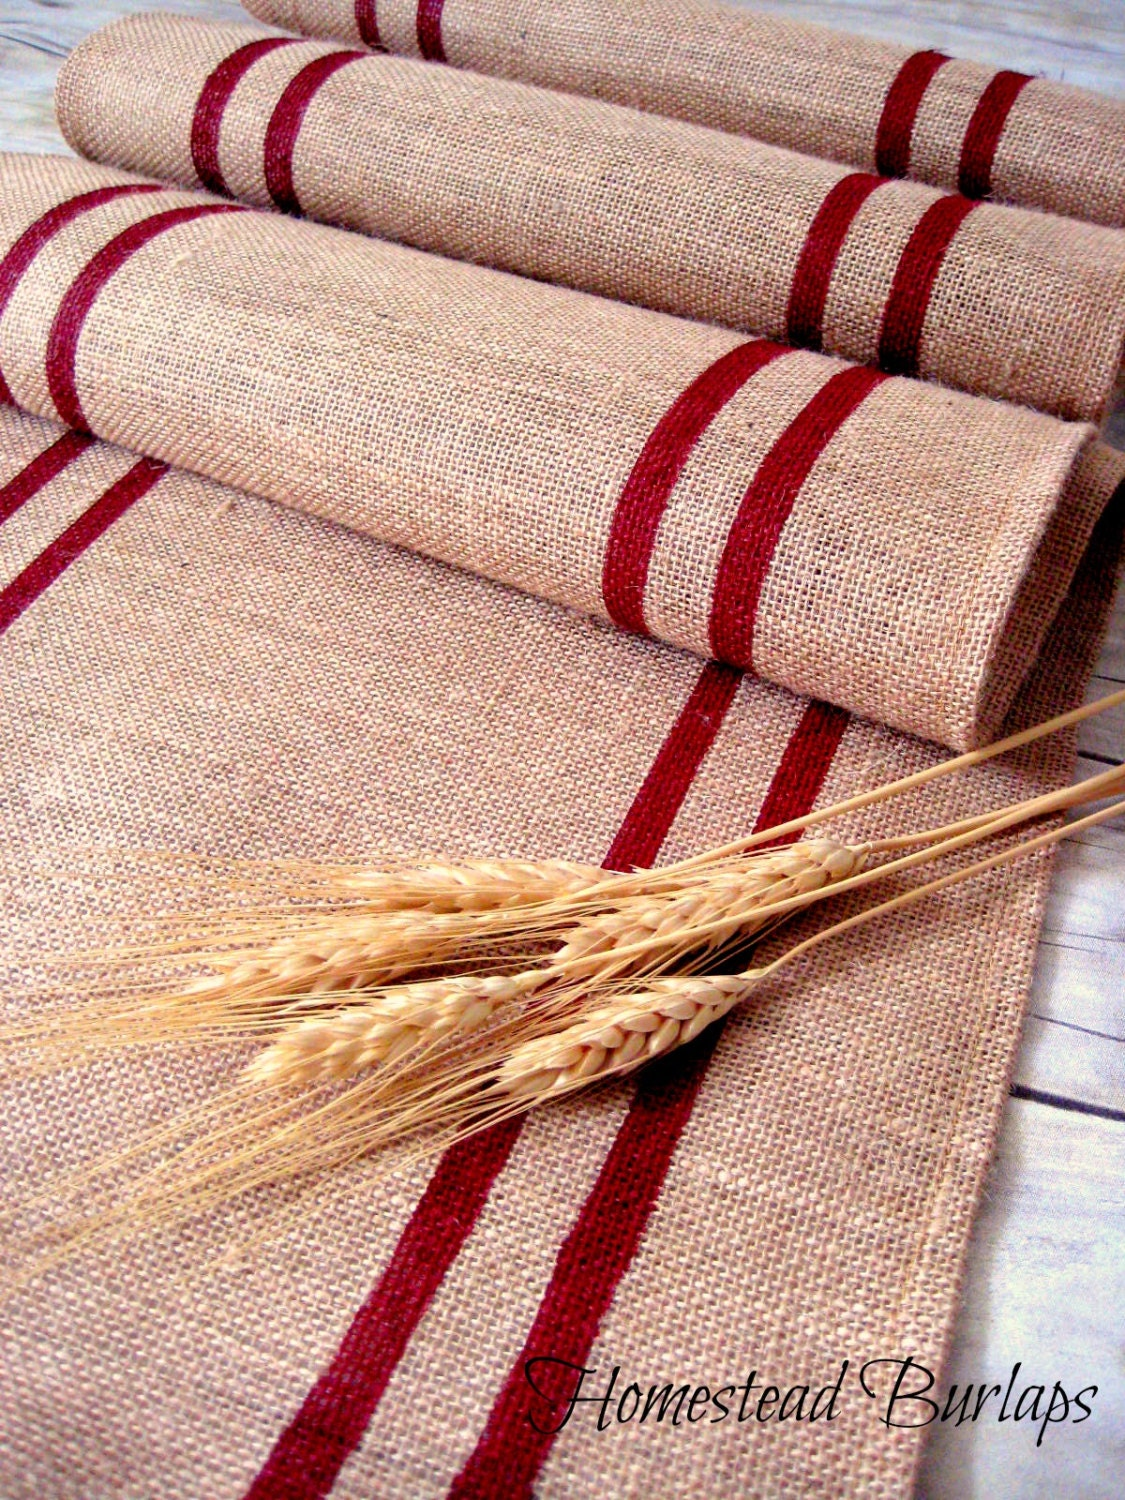 burlap table runner with red hand painted grain sack stripes. Black Bedroom Furniture Sets. Home Design Ideas